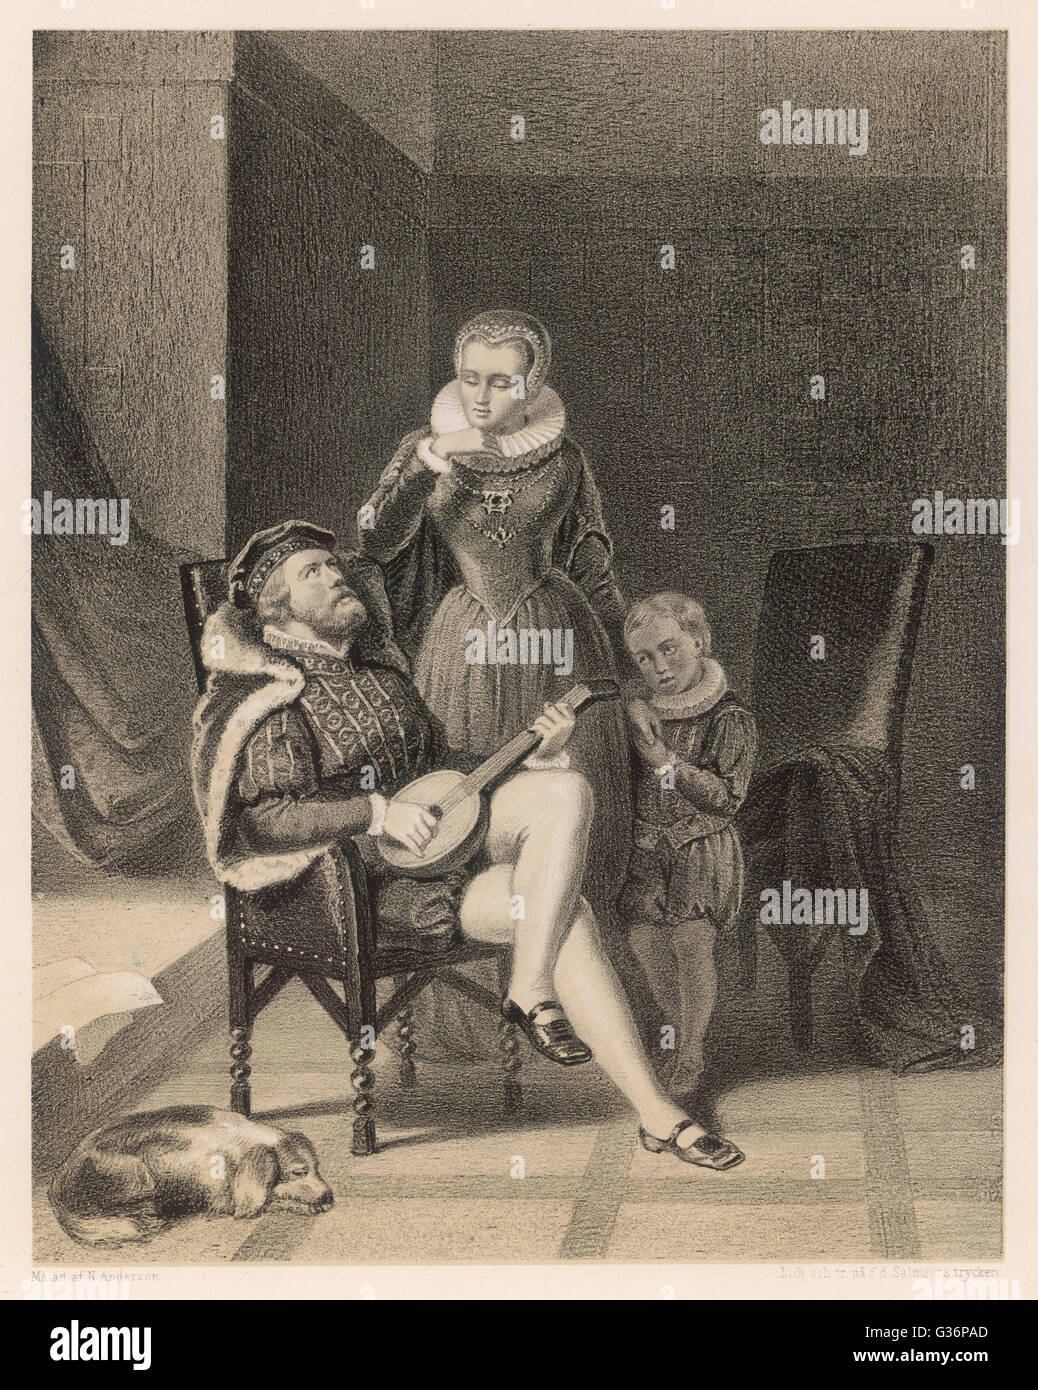 Erik XIV, King of Sweden (reigned 1560-1568), with his mistress (later his wife) Karin (or Catharina) Mansdotter. - Stock Image